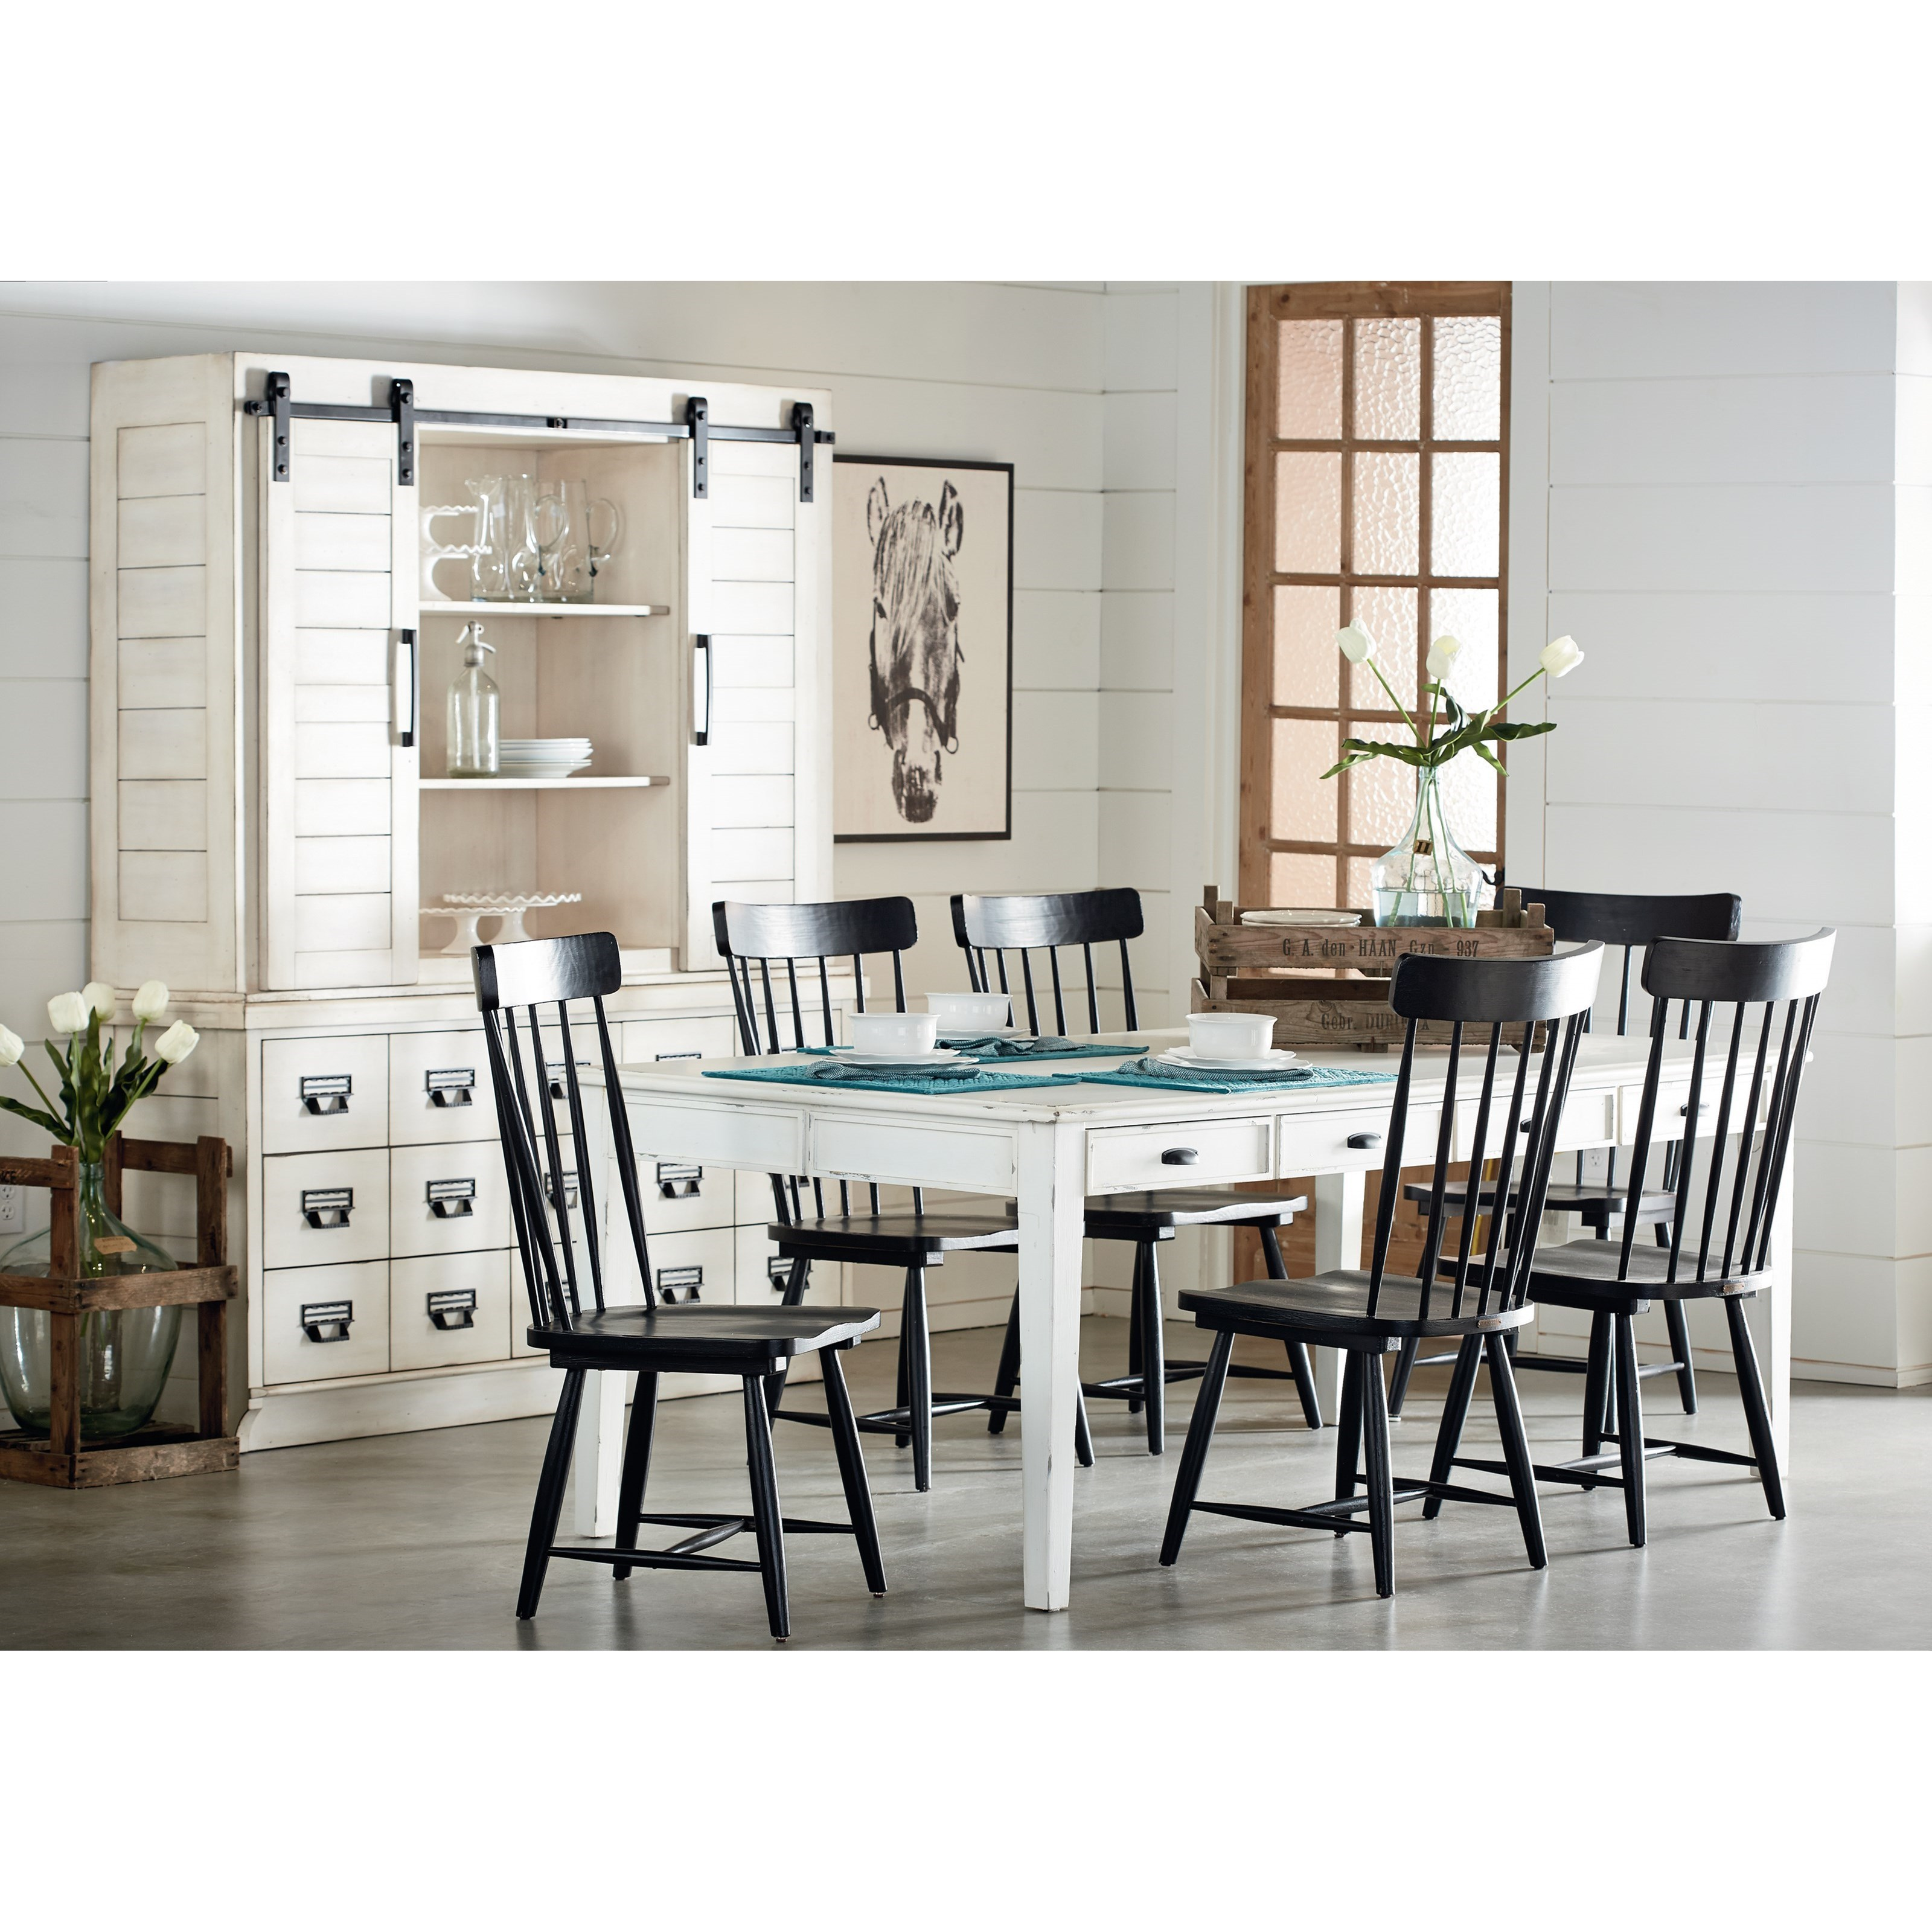 Magnolia home by joanna gaines farmhouse kitchen dining for Dining room joanna gaines